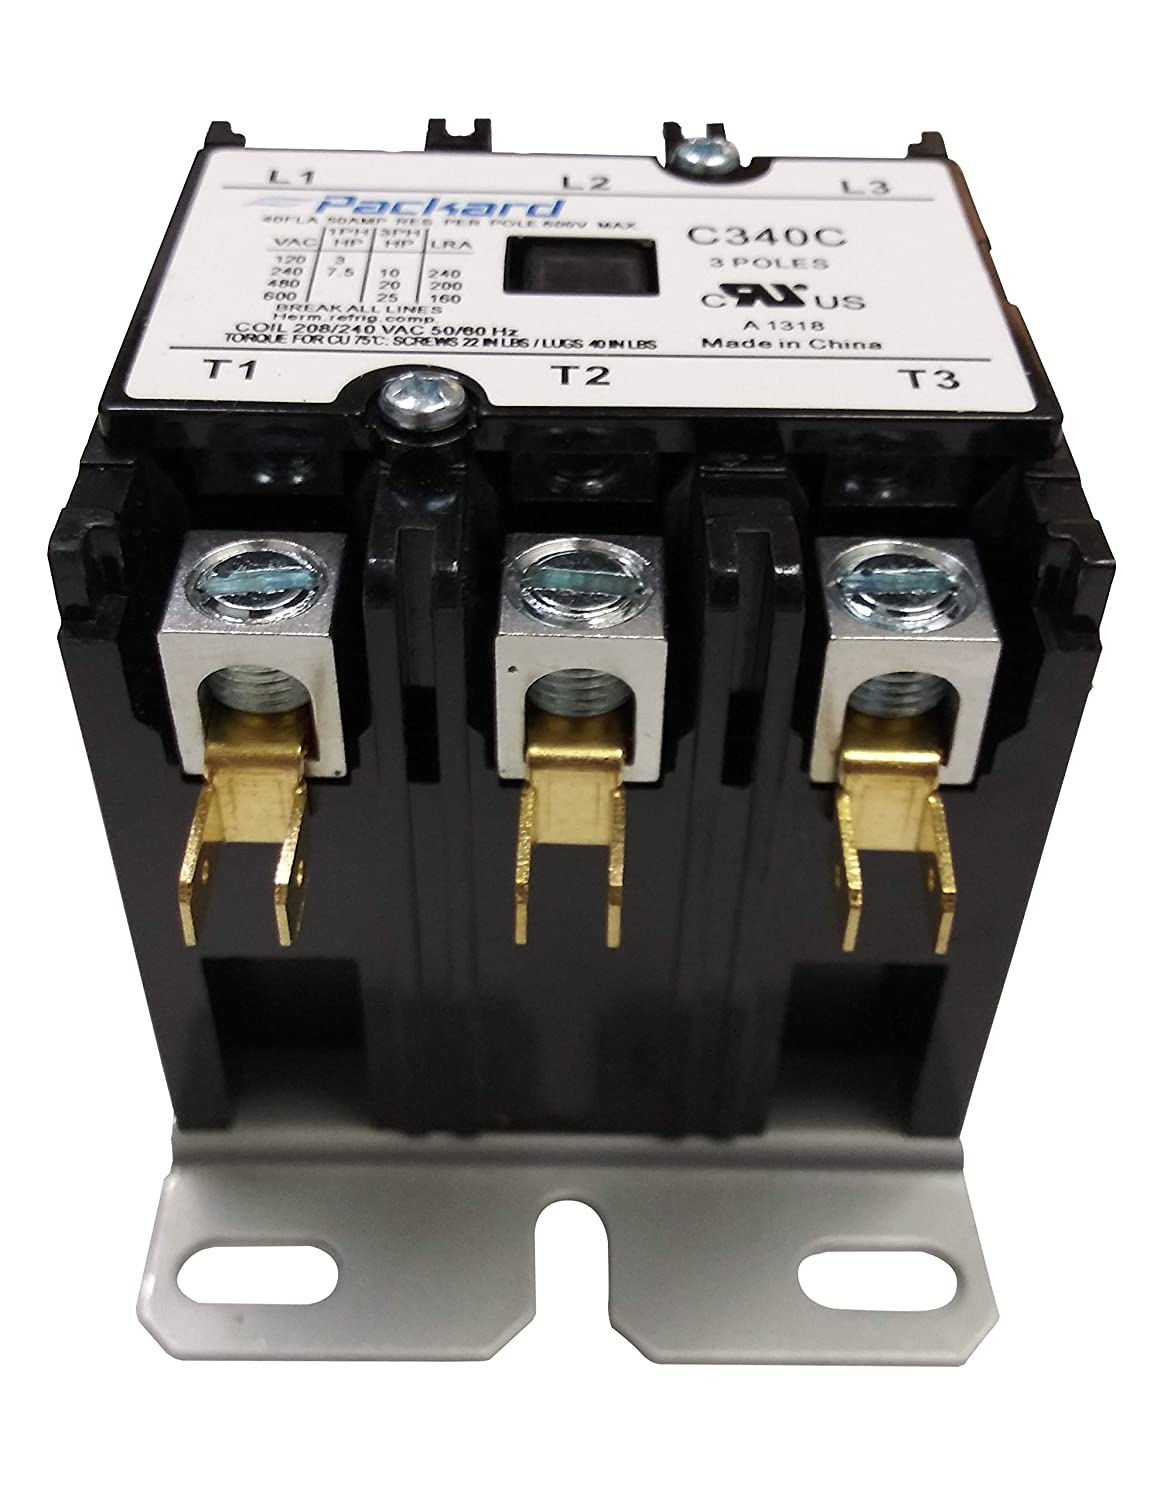 packard c340c 3 pole 40 amp contactor 208/240 volt coil contactor:  replacement household furnace electronic relays: amazon com: industrial &  scientific